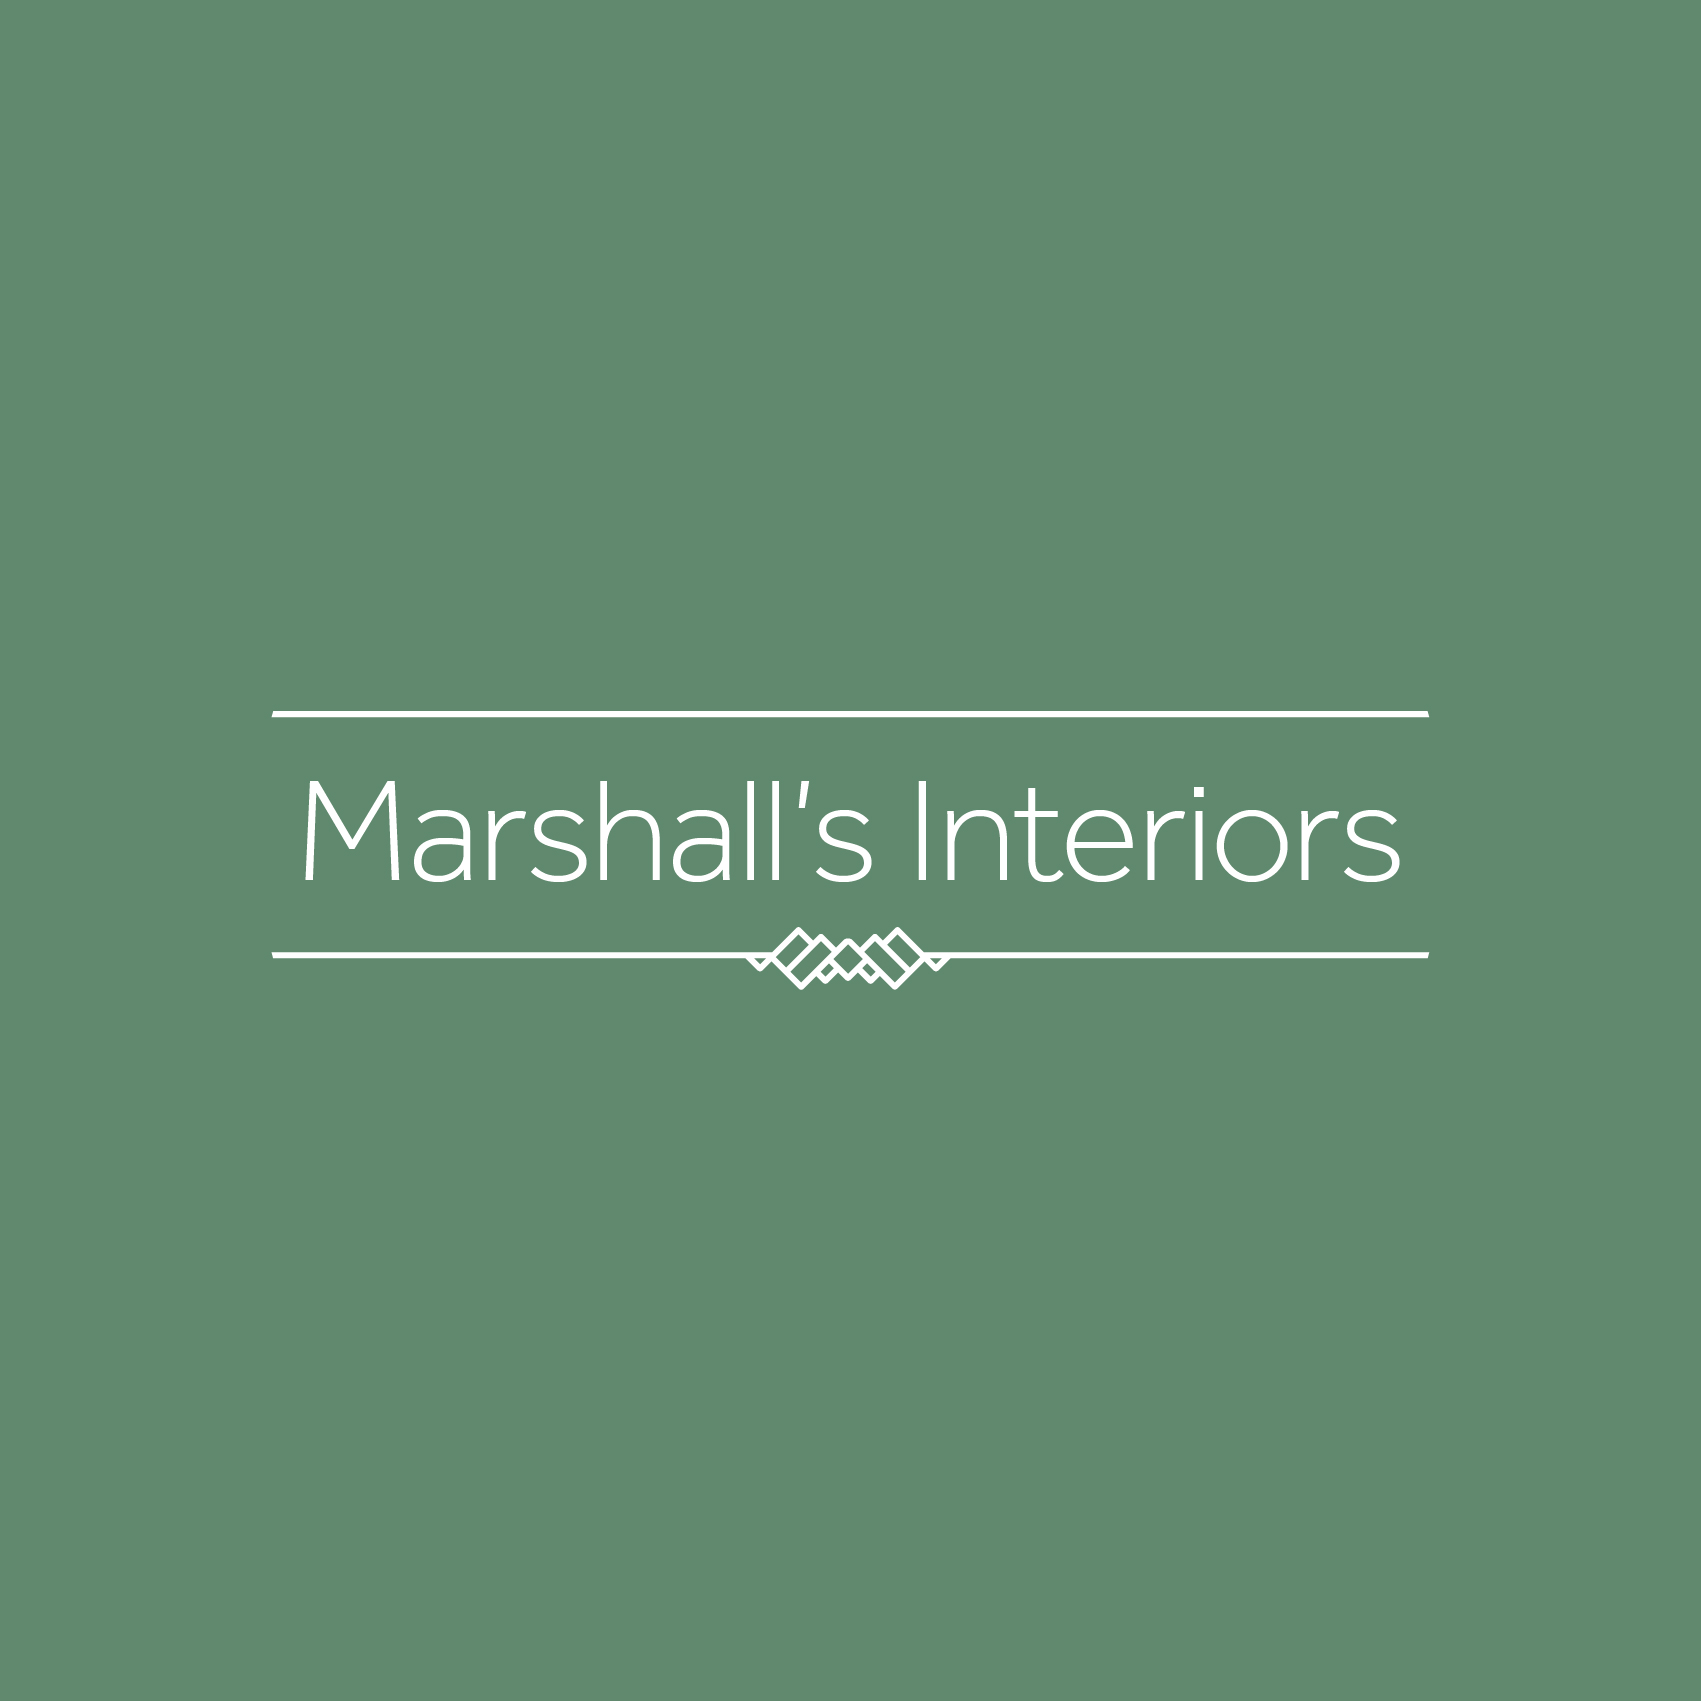 Marshall's Interiors Logo